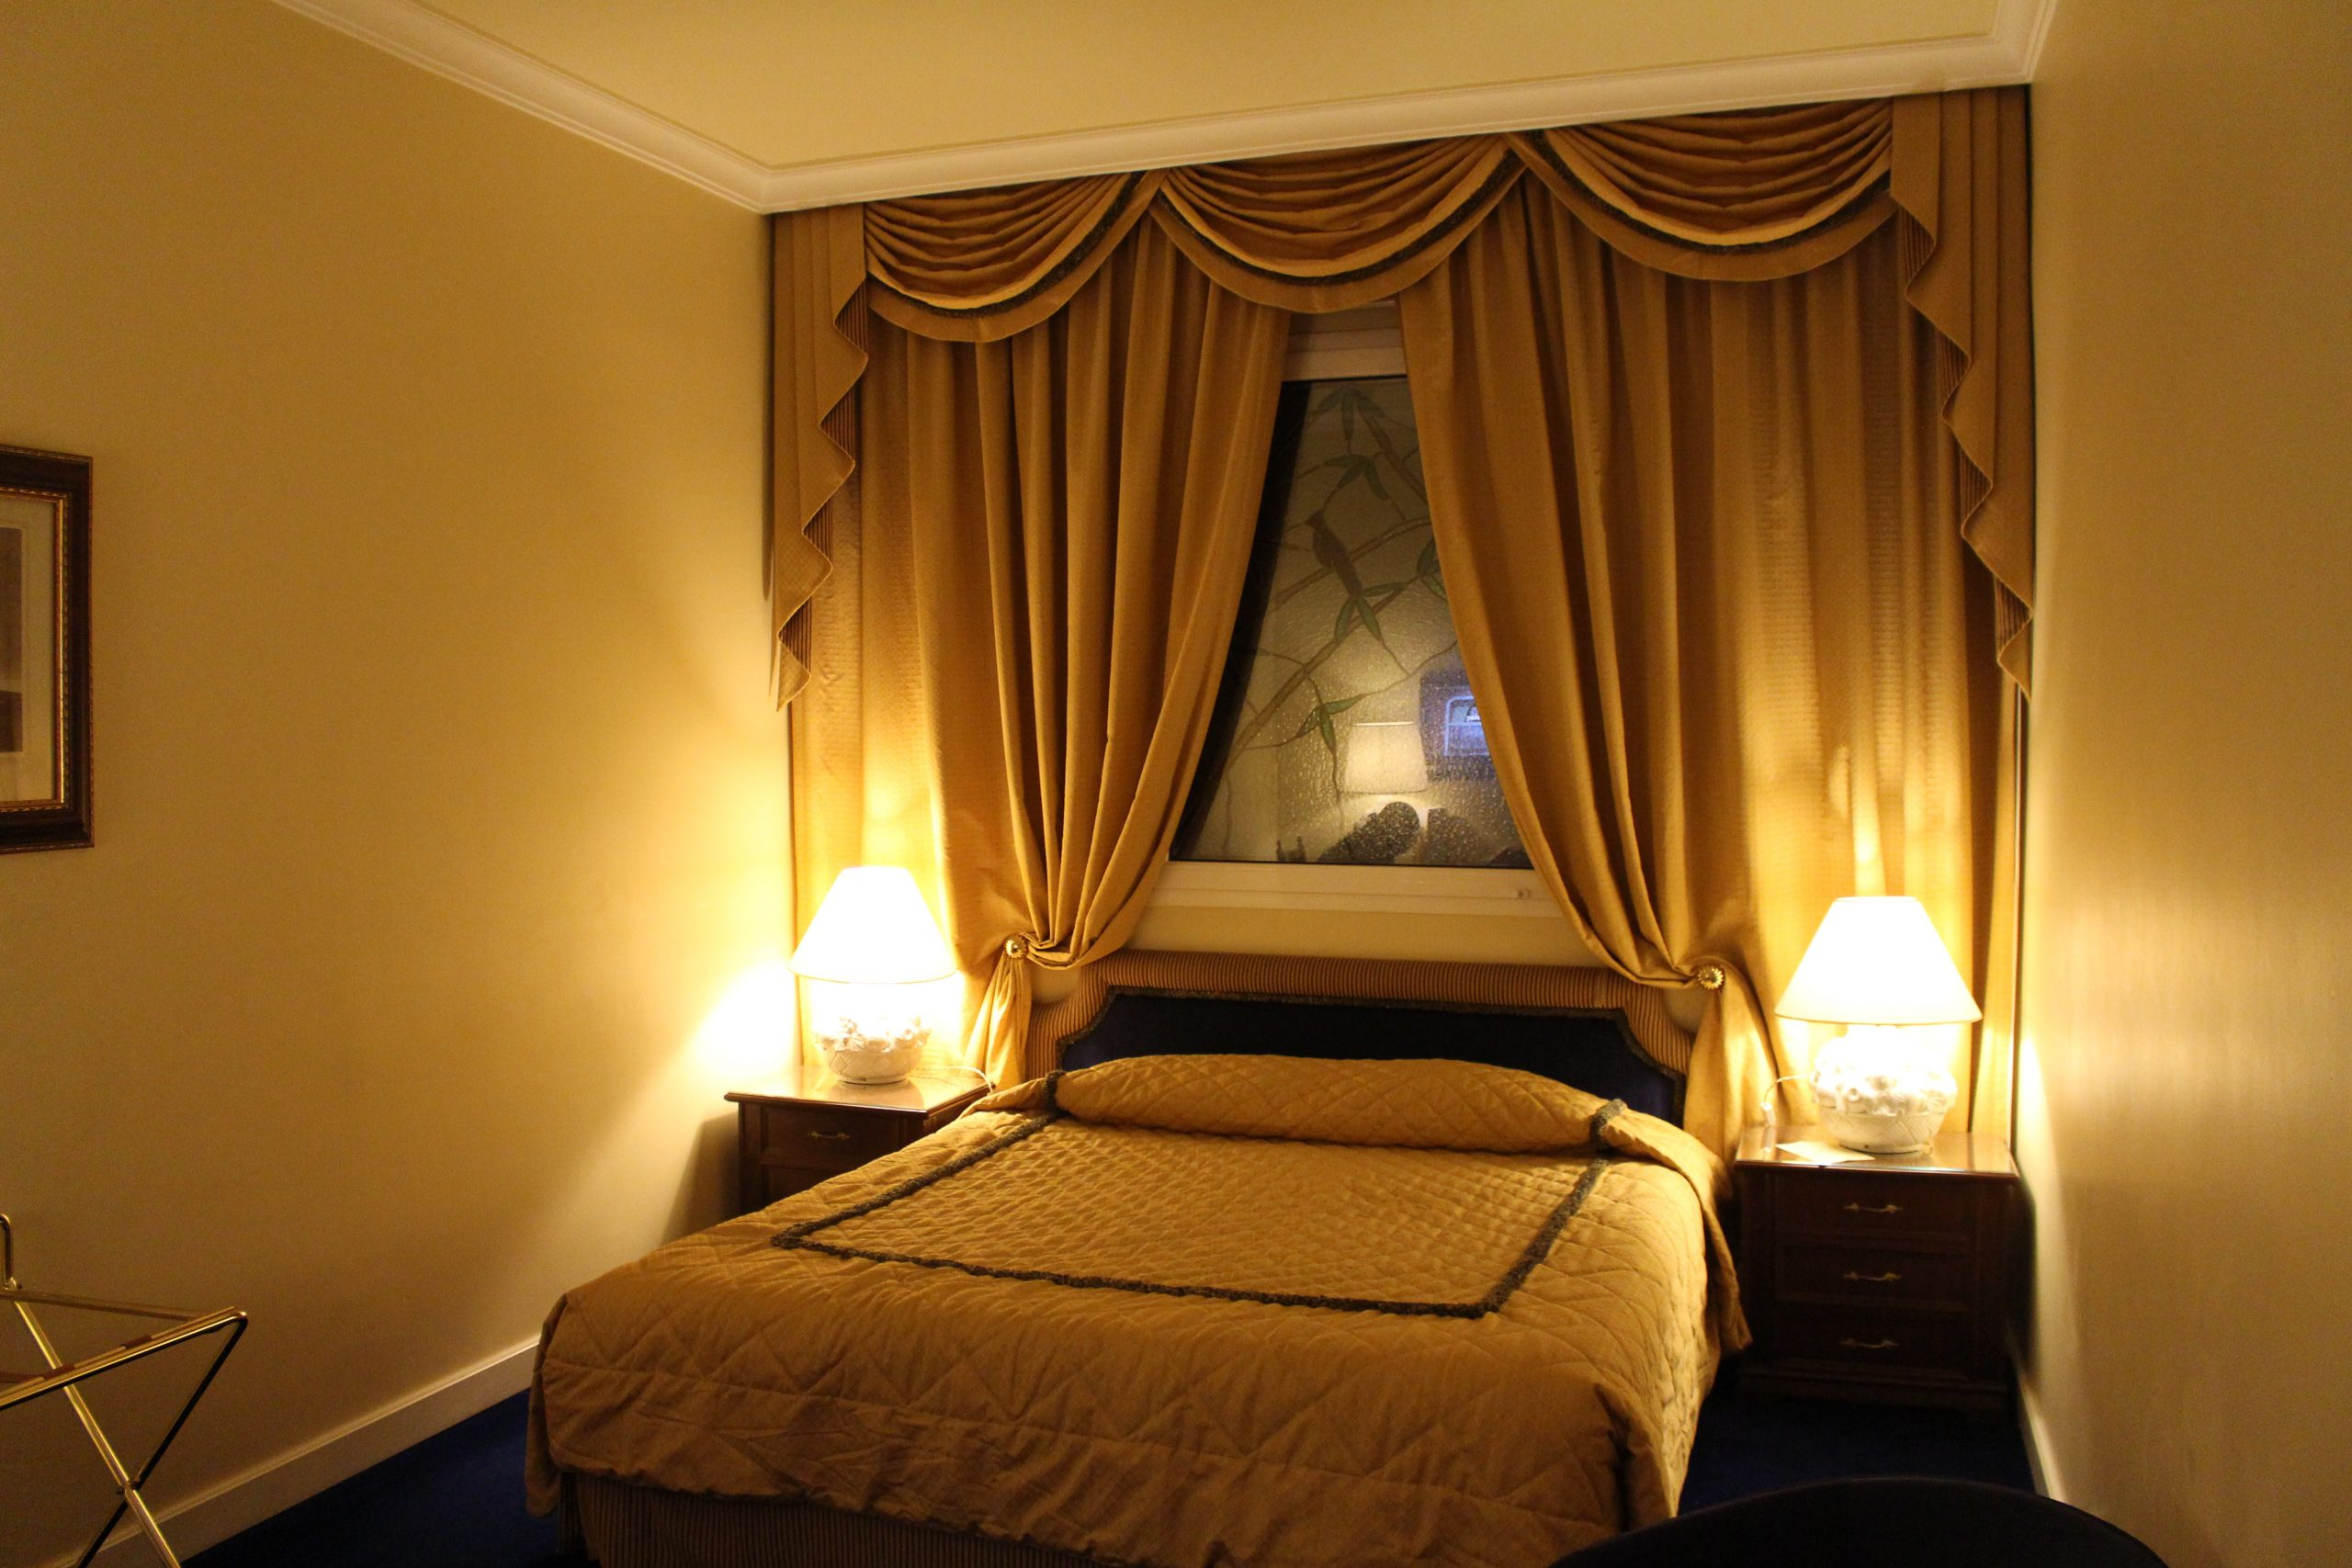 royal_olimpic_hotel_quarto